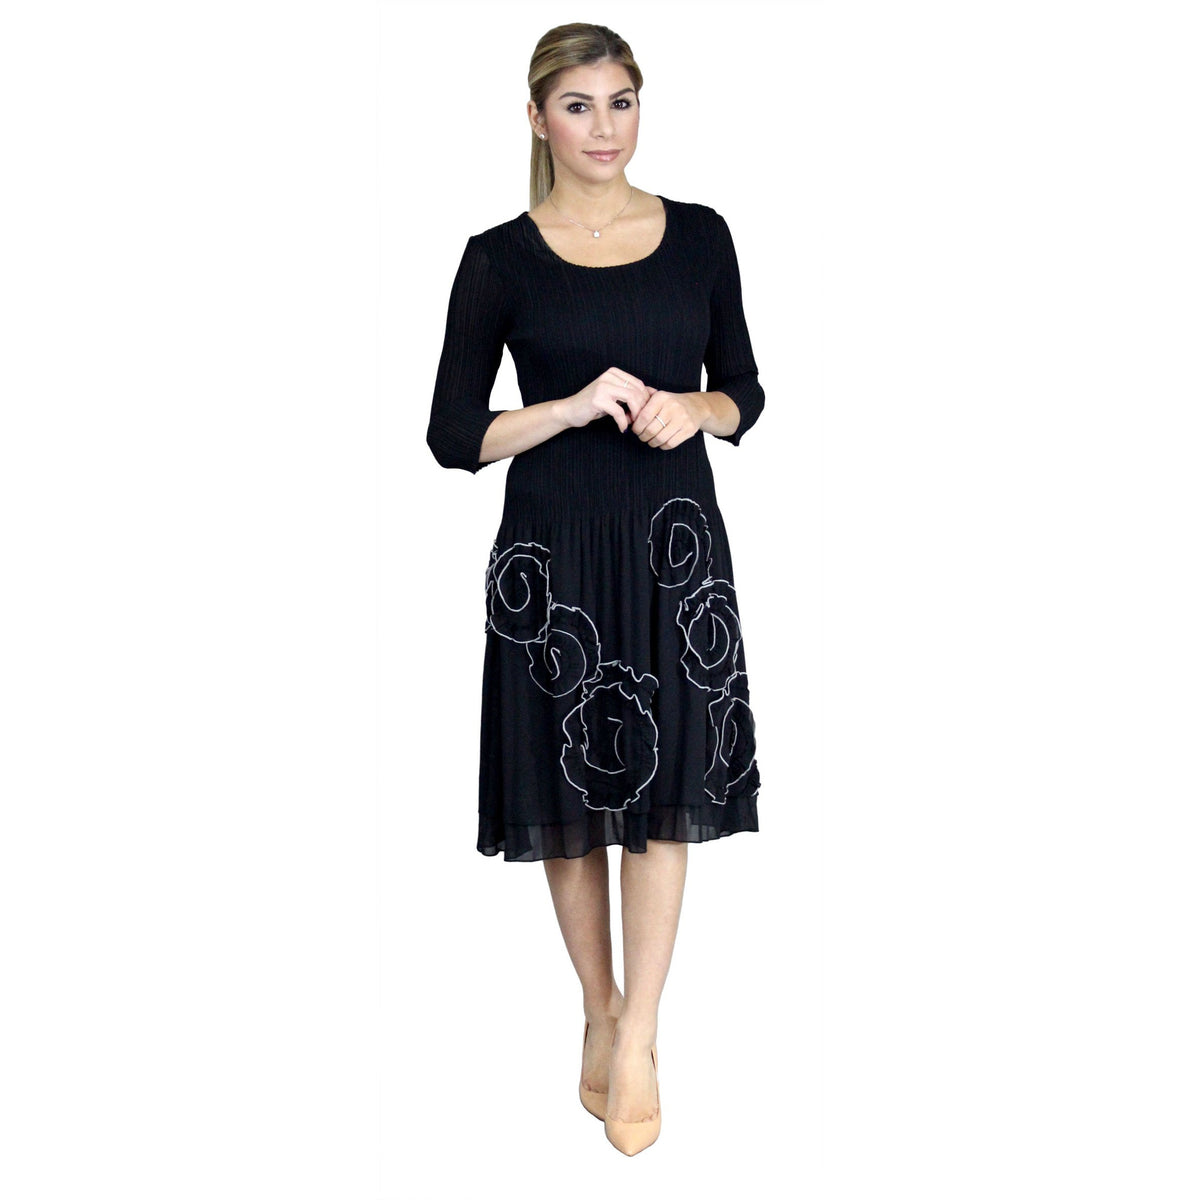 3/4 Sleeve Swirl Stitch Dress - Black